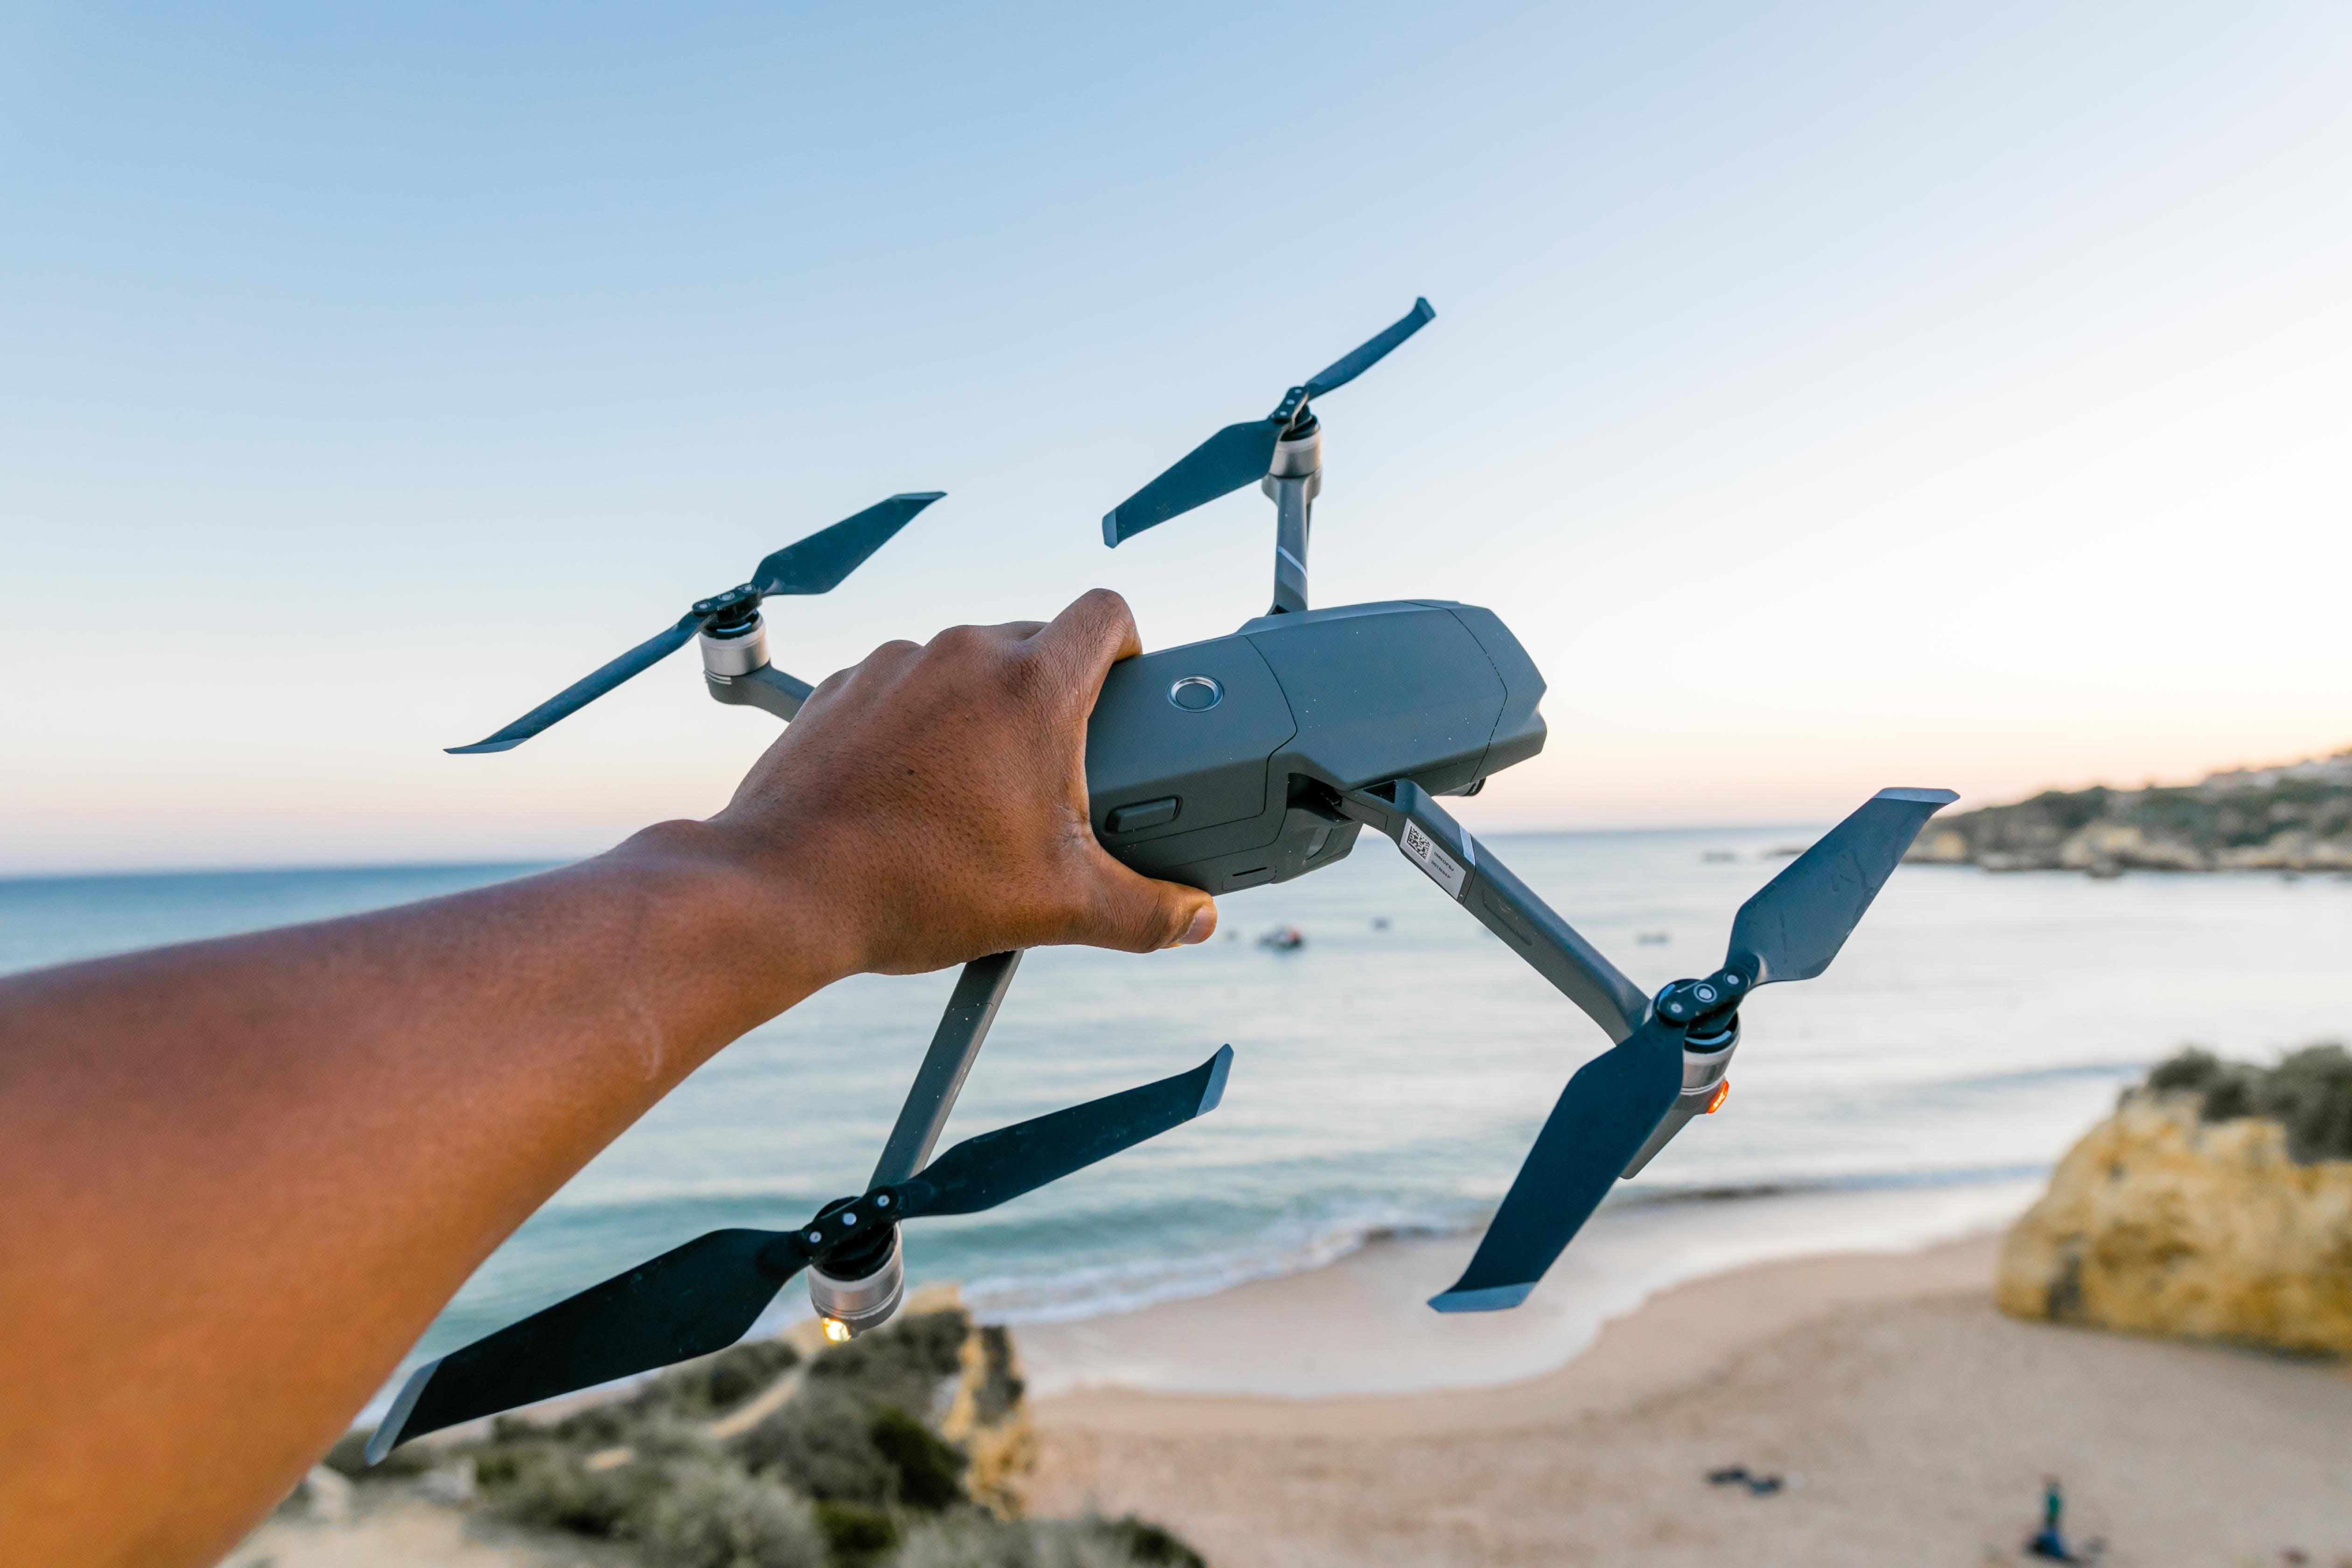 Person Holding Gray and Black Quadcopter Drone